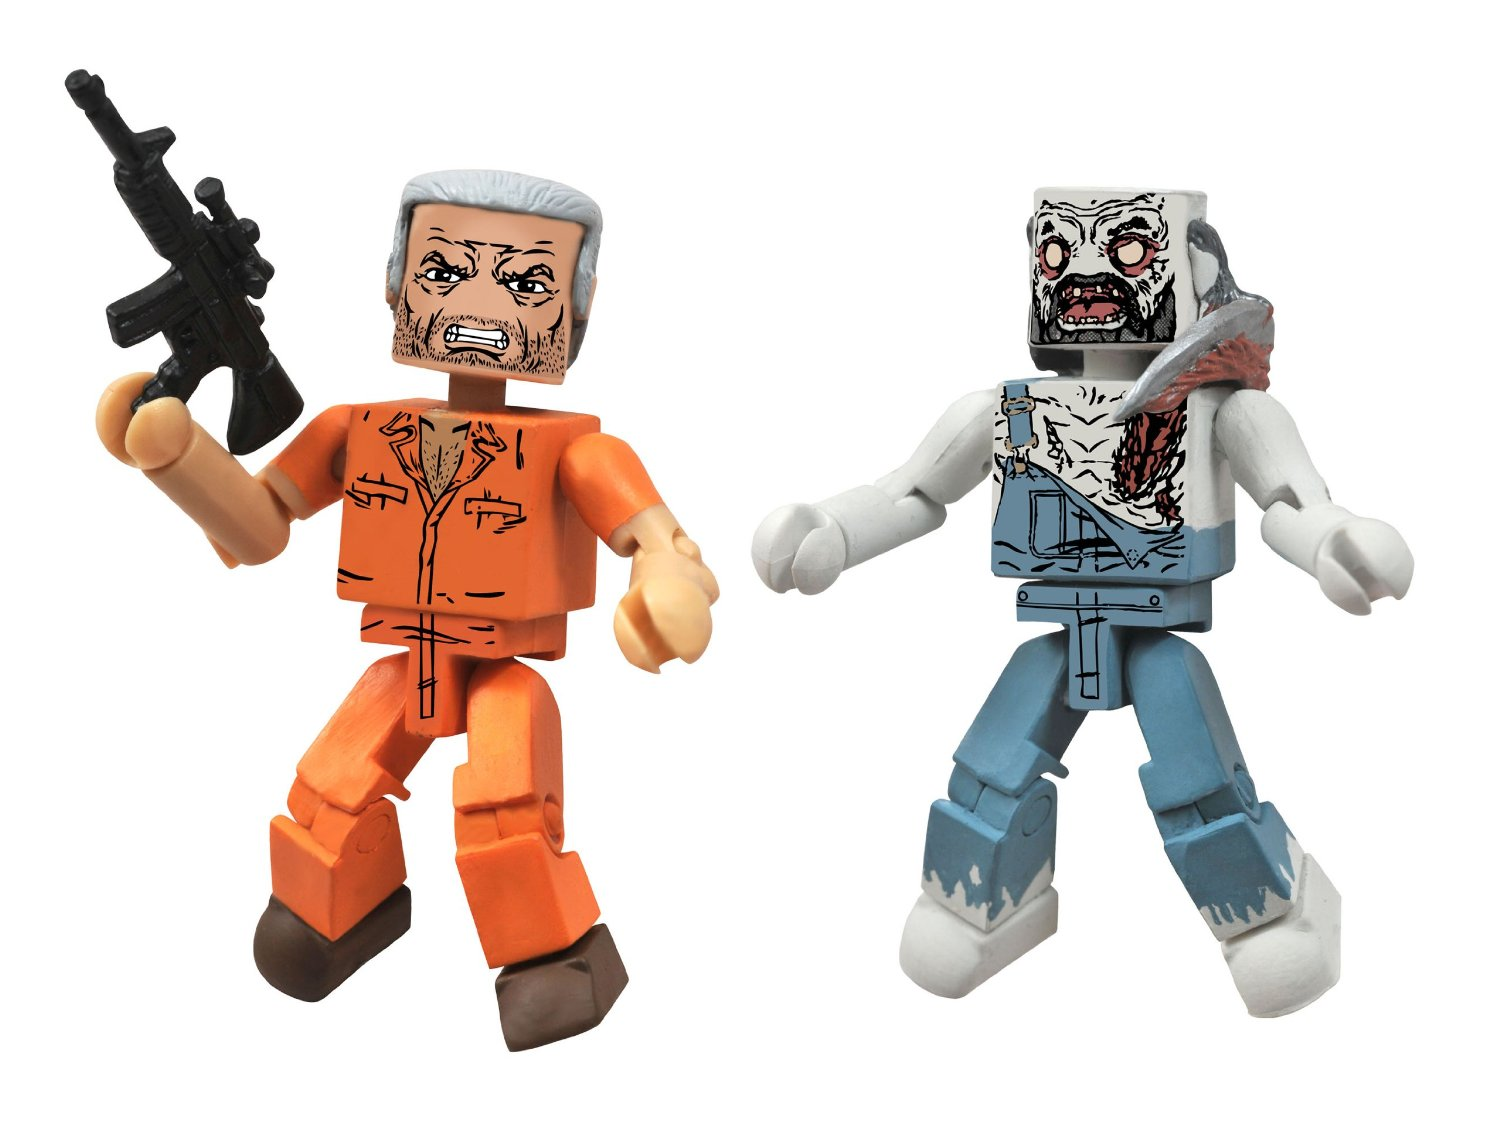 Walking Dead Minimates Hershel and Farmer Zombie